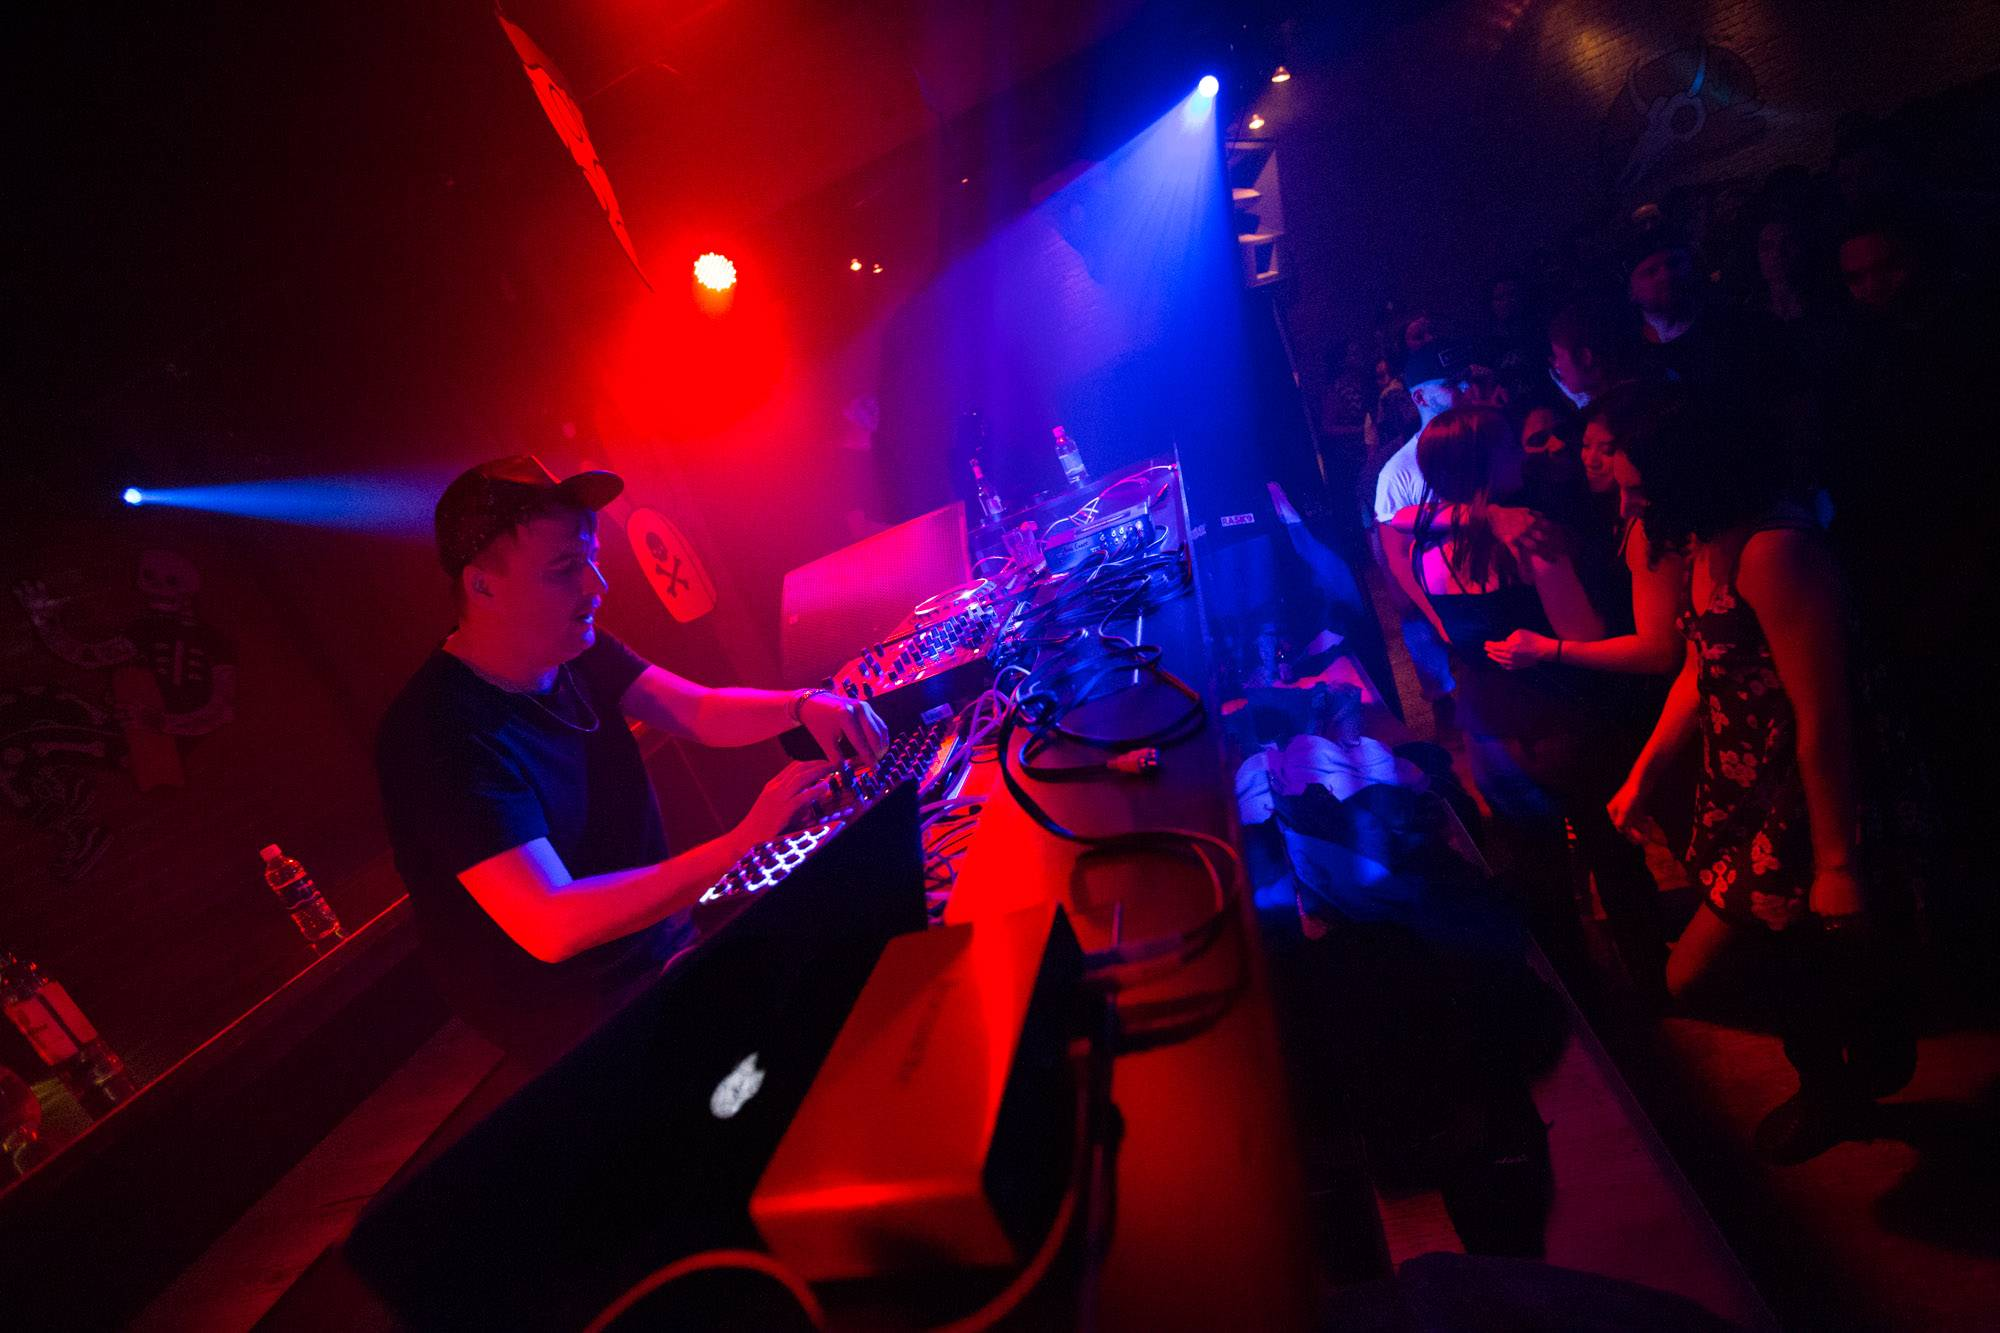 Machinedrum at Fortune Sound Club, Vancouver, Oct 29 2015. Kirk Chantraine photo.